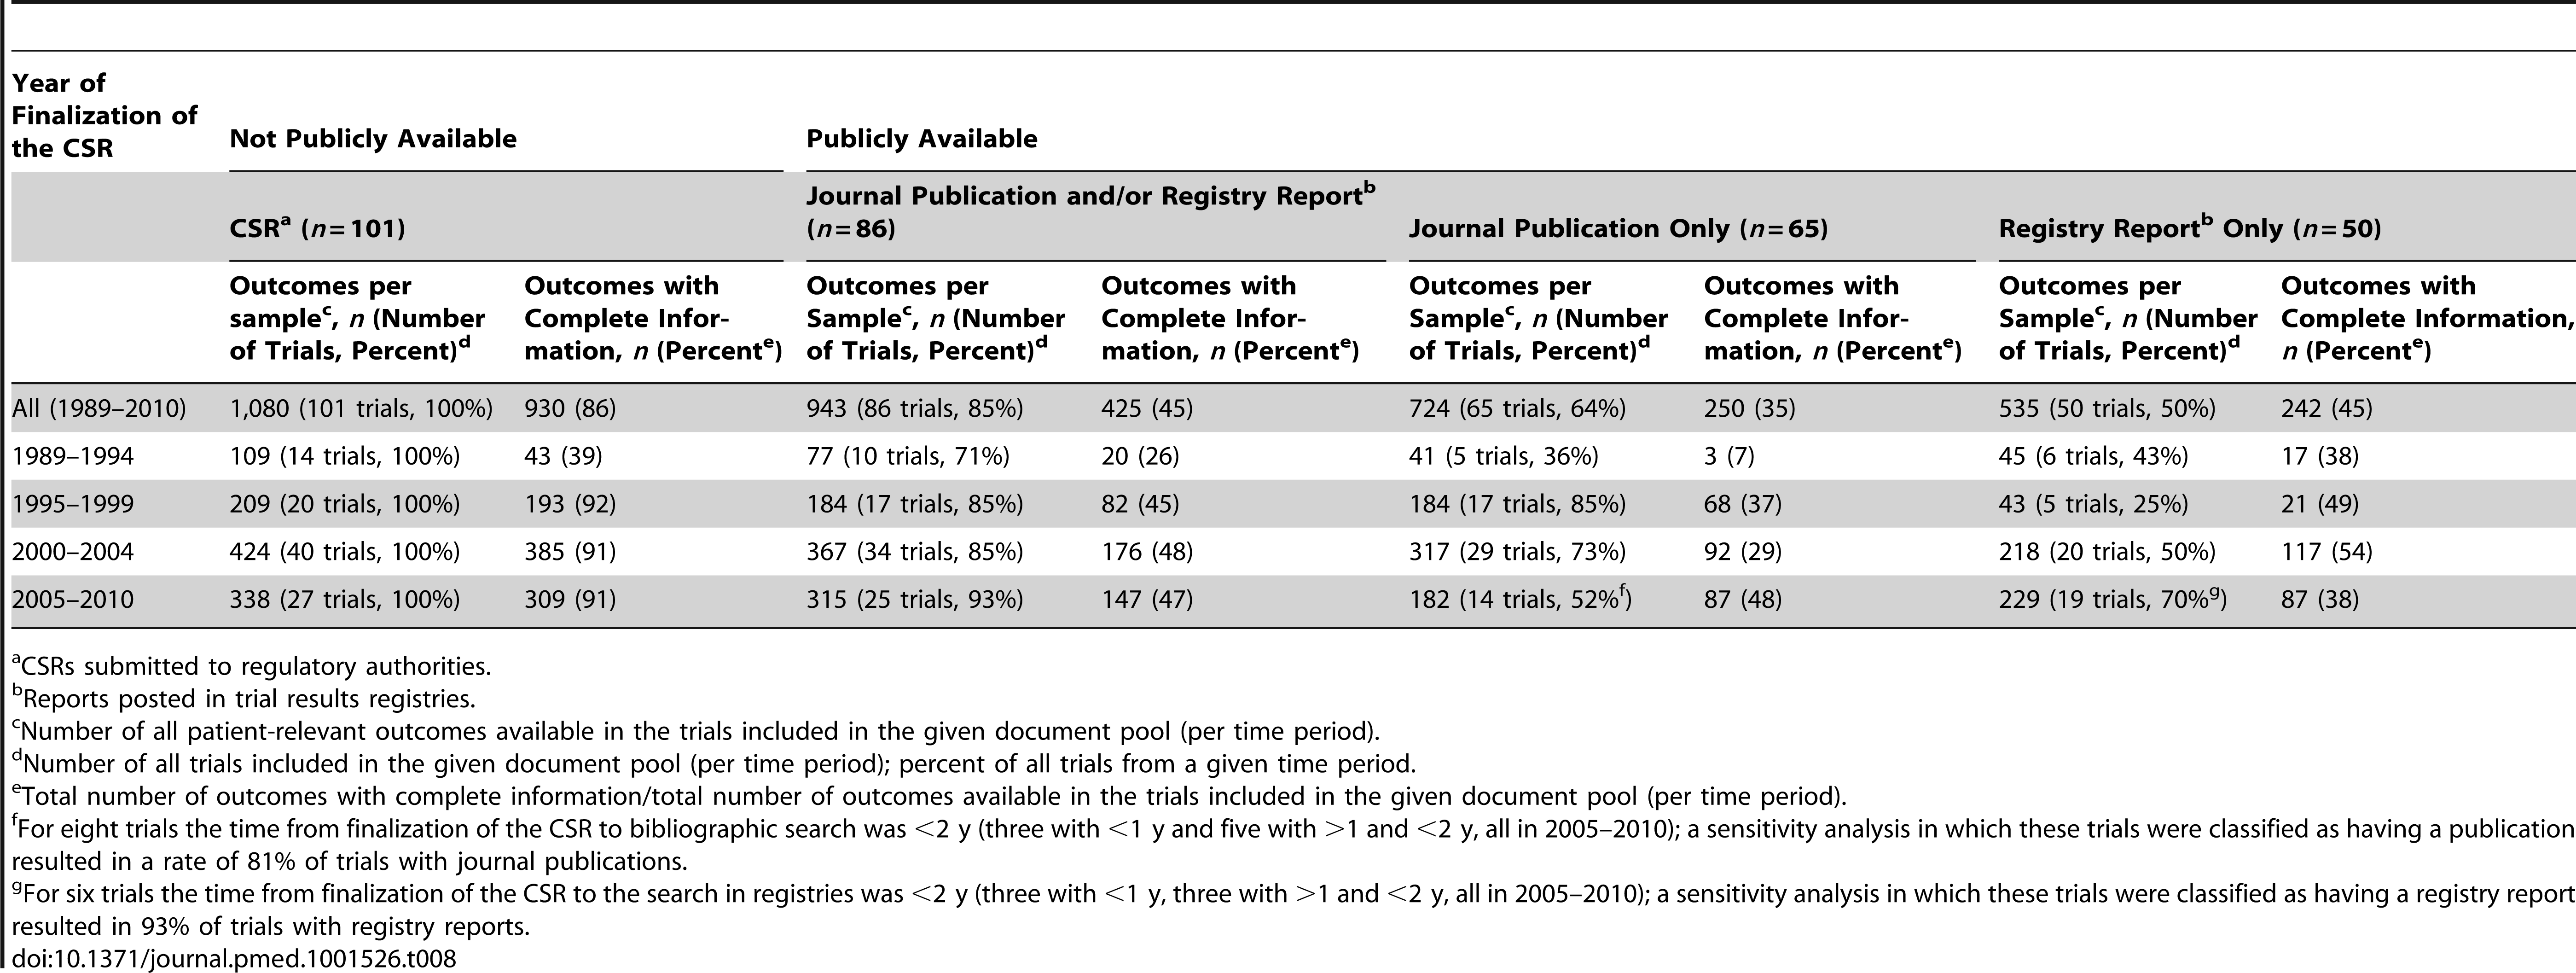 Availability of trials and completeness of information for patient-relevant outcomes in publicly available sources by year of CSR.